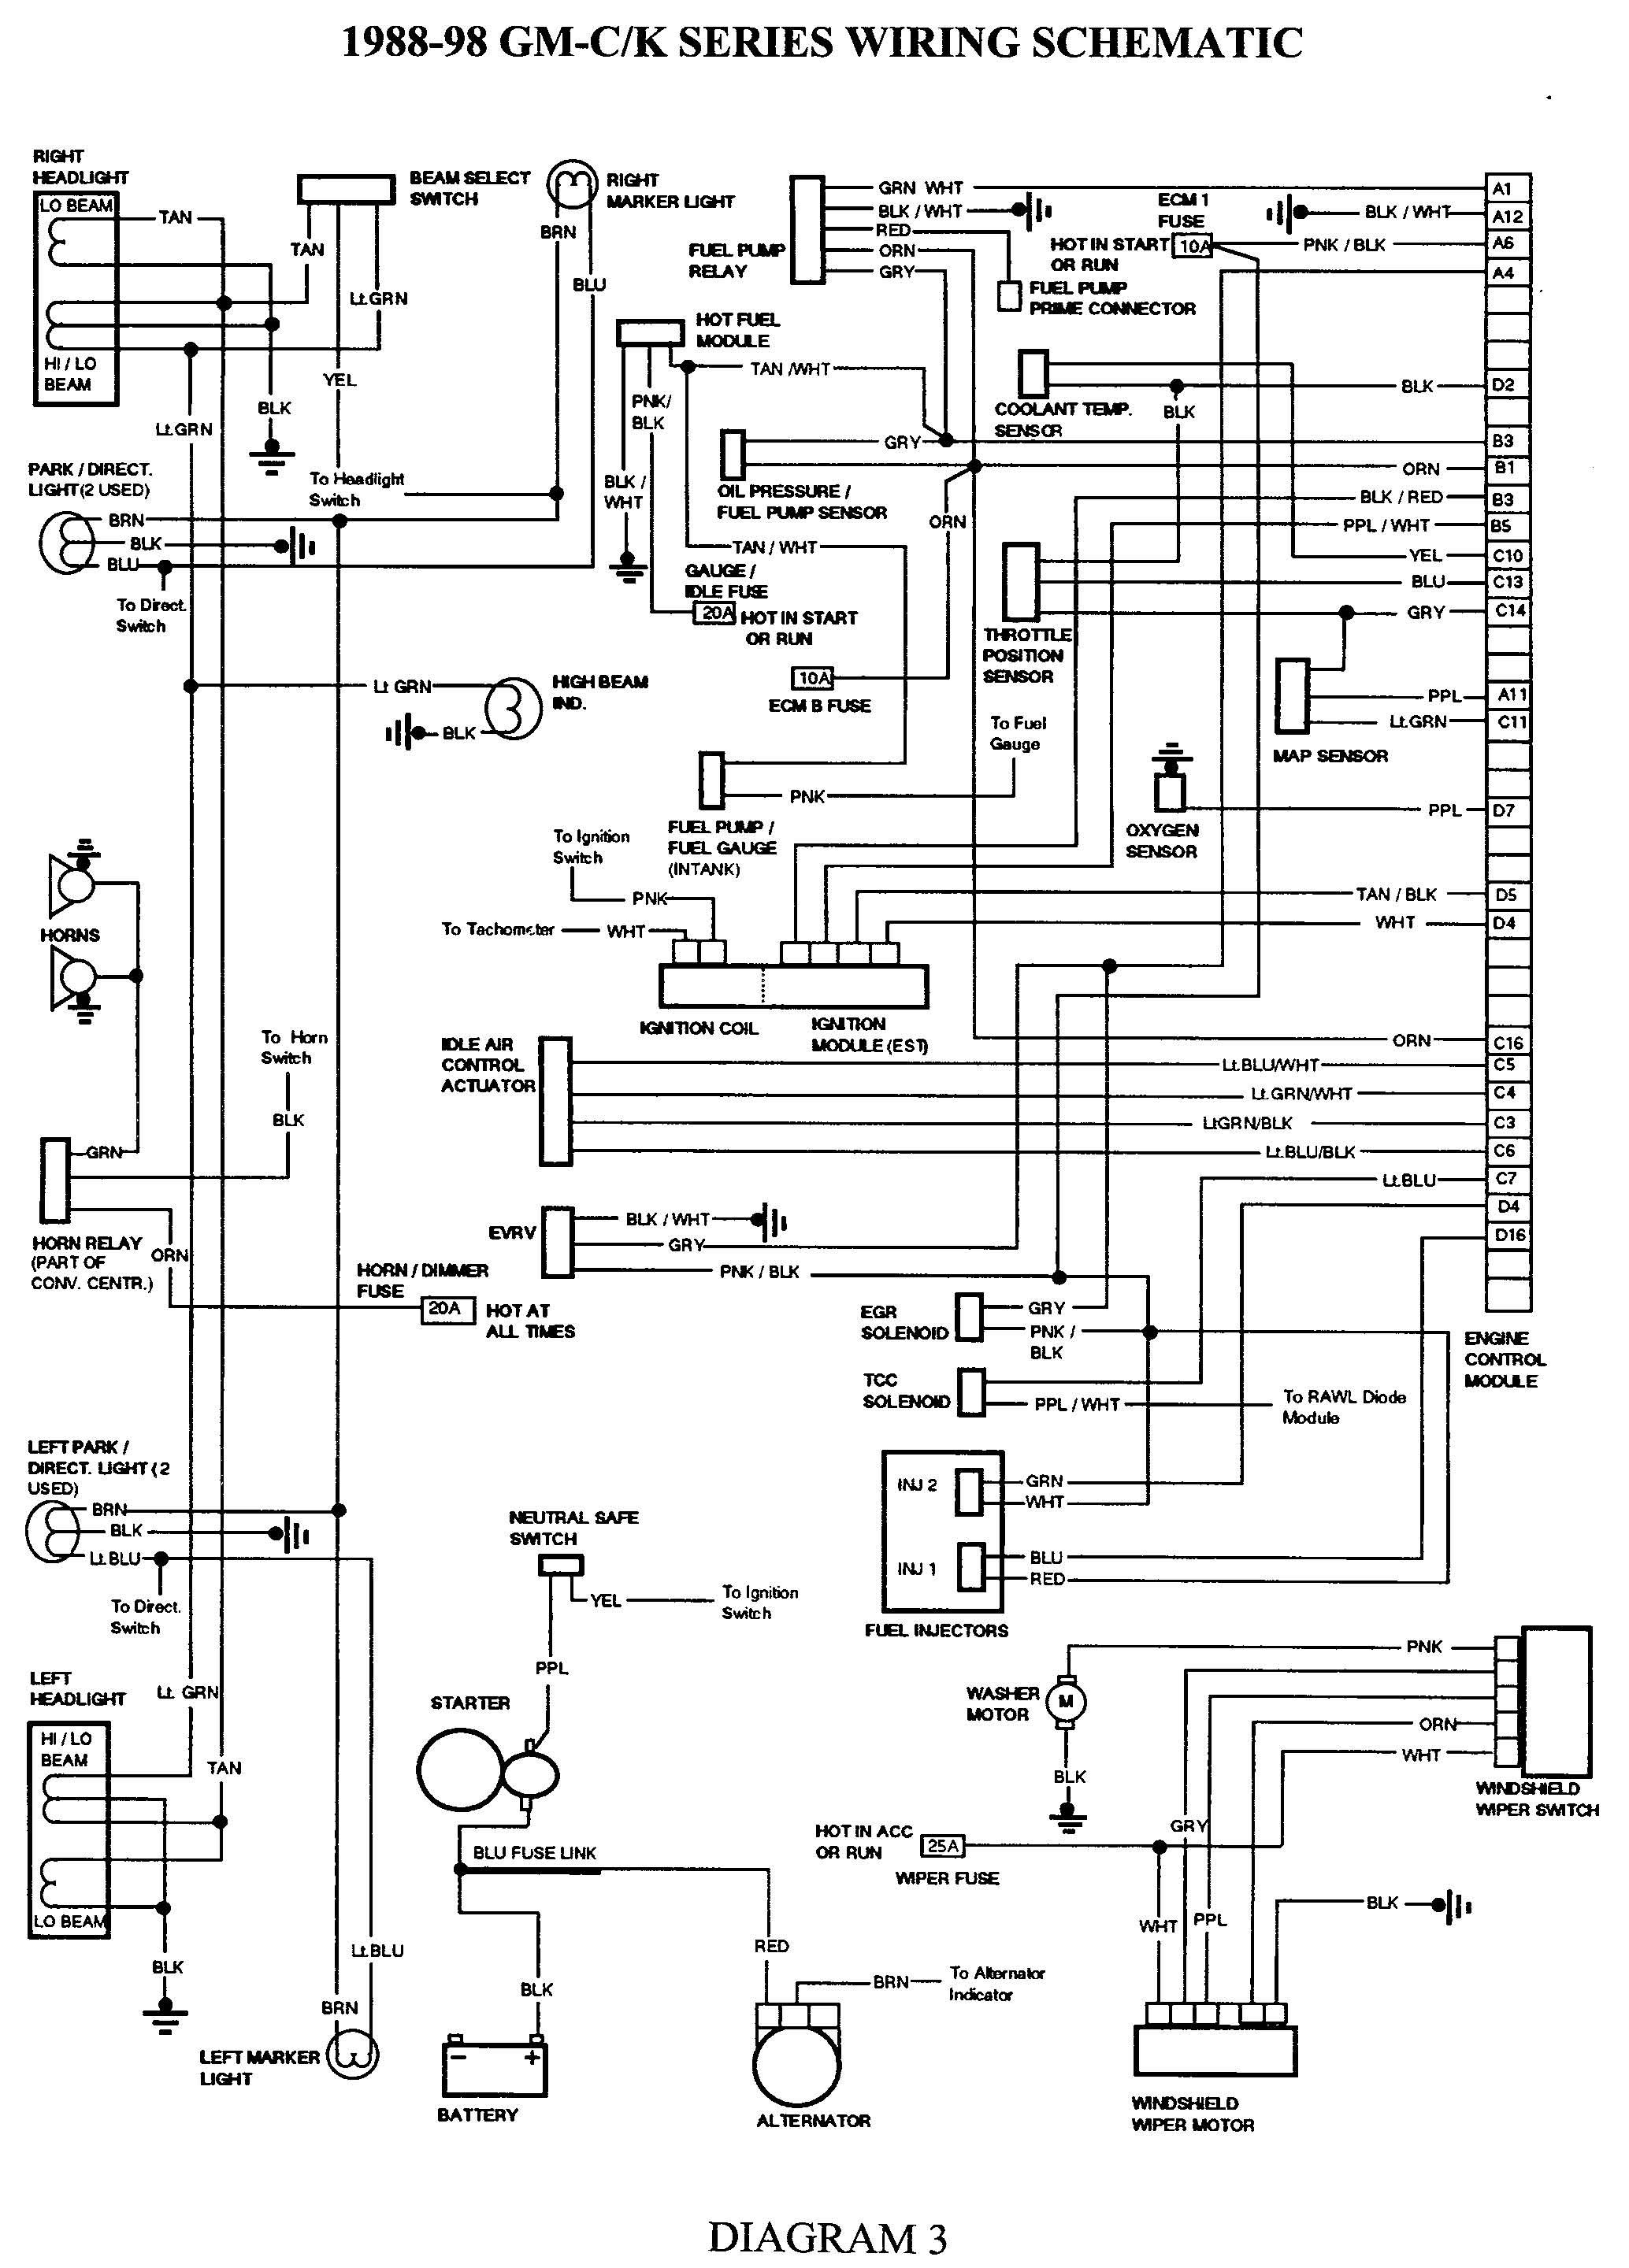 b2f2e5dbdc07dada83ef514f6d4ce3d4 gmc truck wiring diagrams on gm wiring harness diagram 88 98 kc 66 Chevy Headlight Switch Wiring Diagram at pacquiaovsvargaslive.co